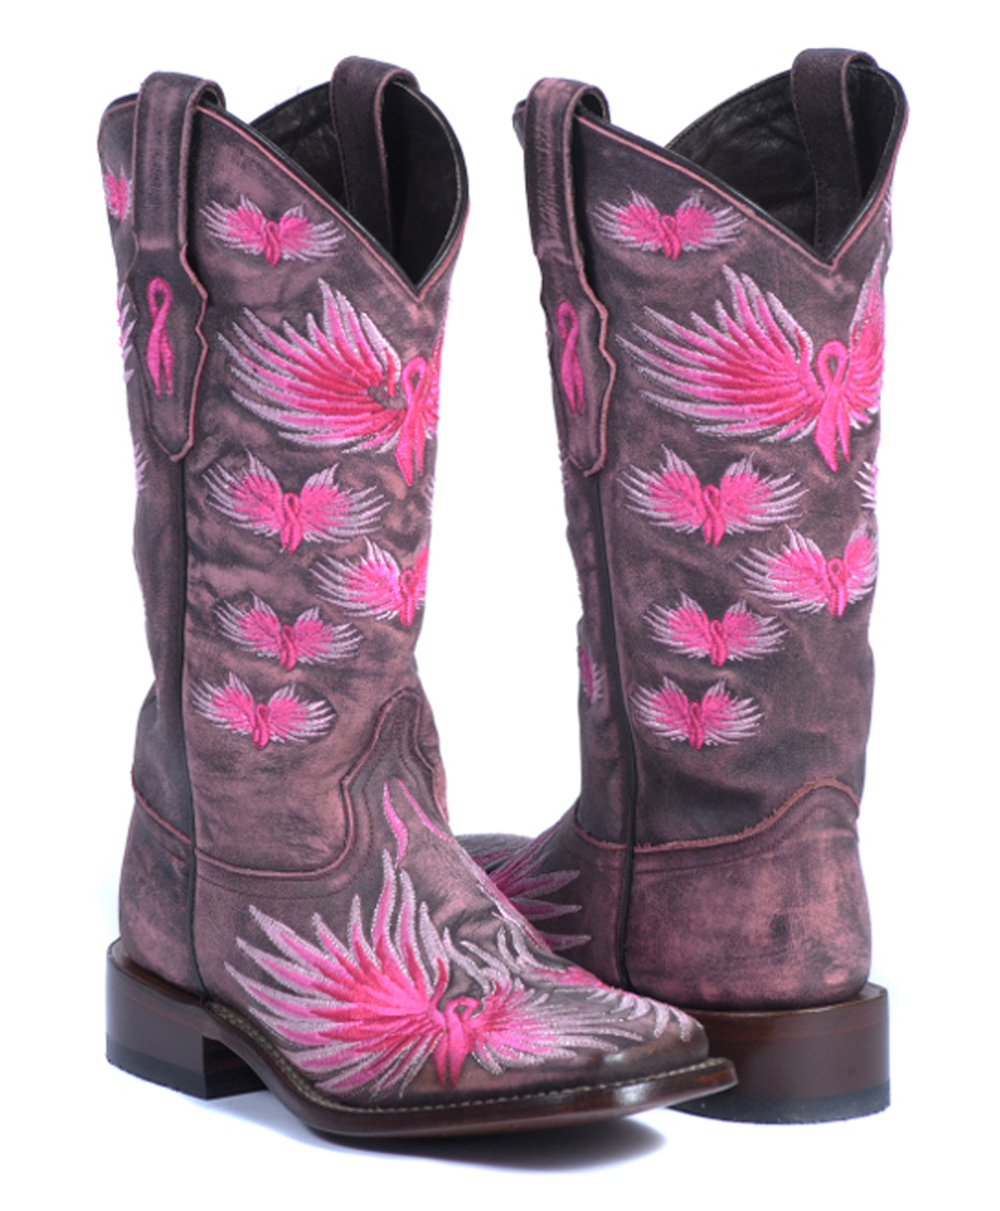 2014 Wings of Hope Boots